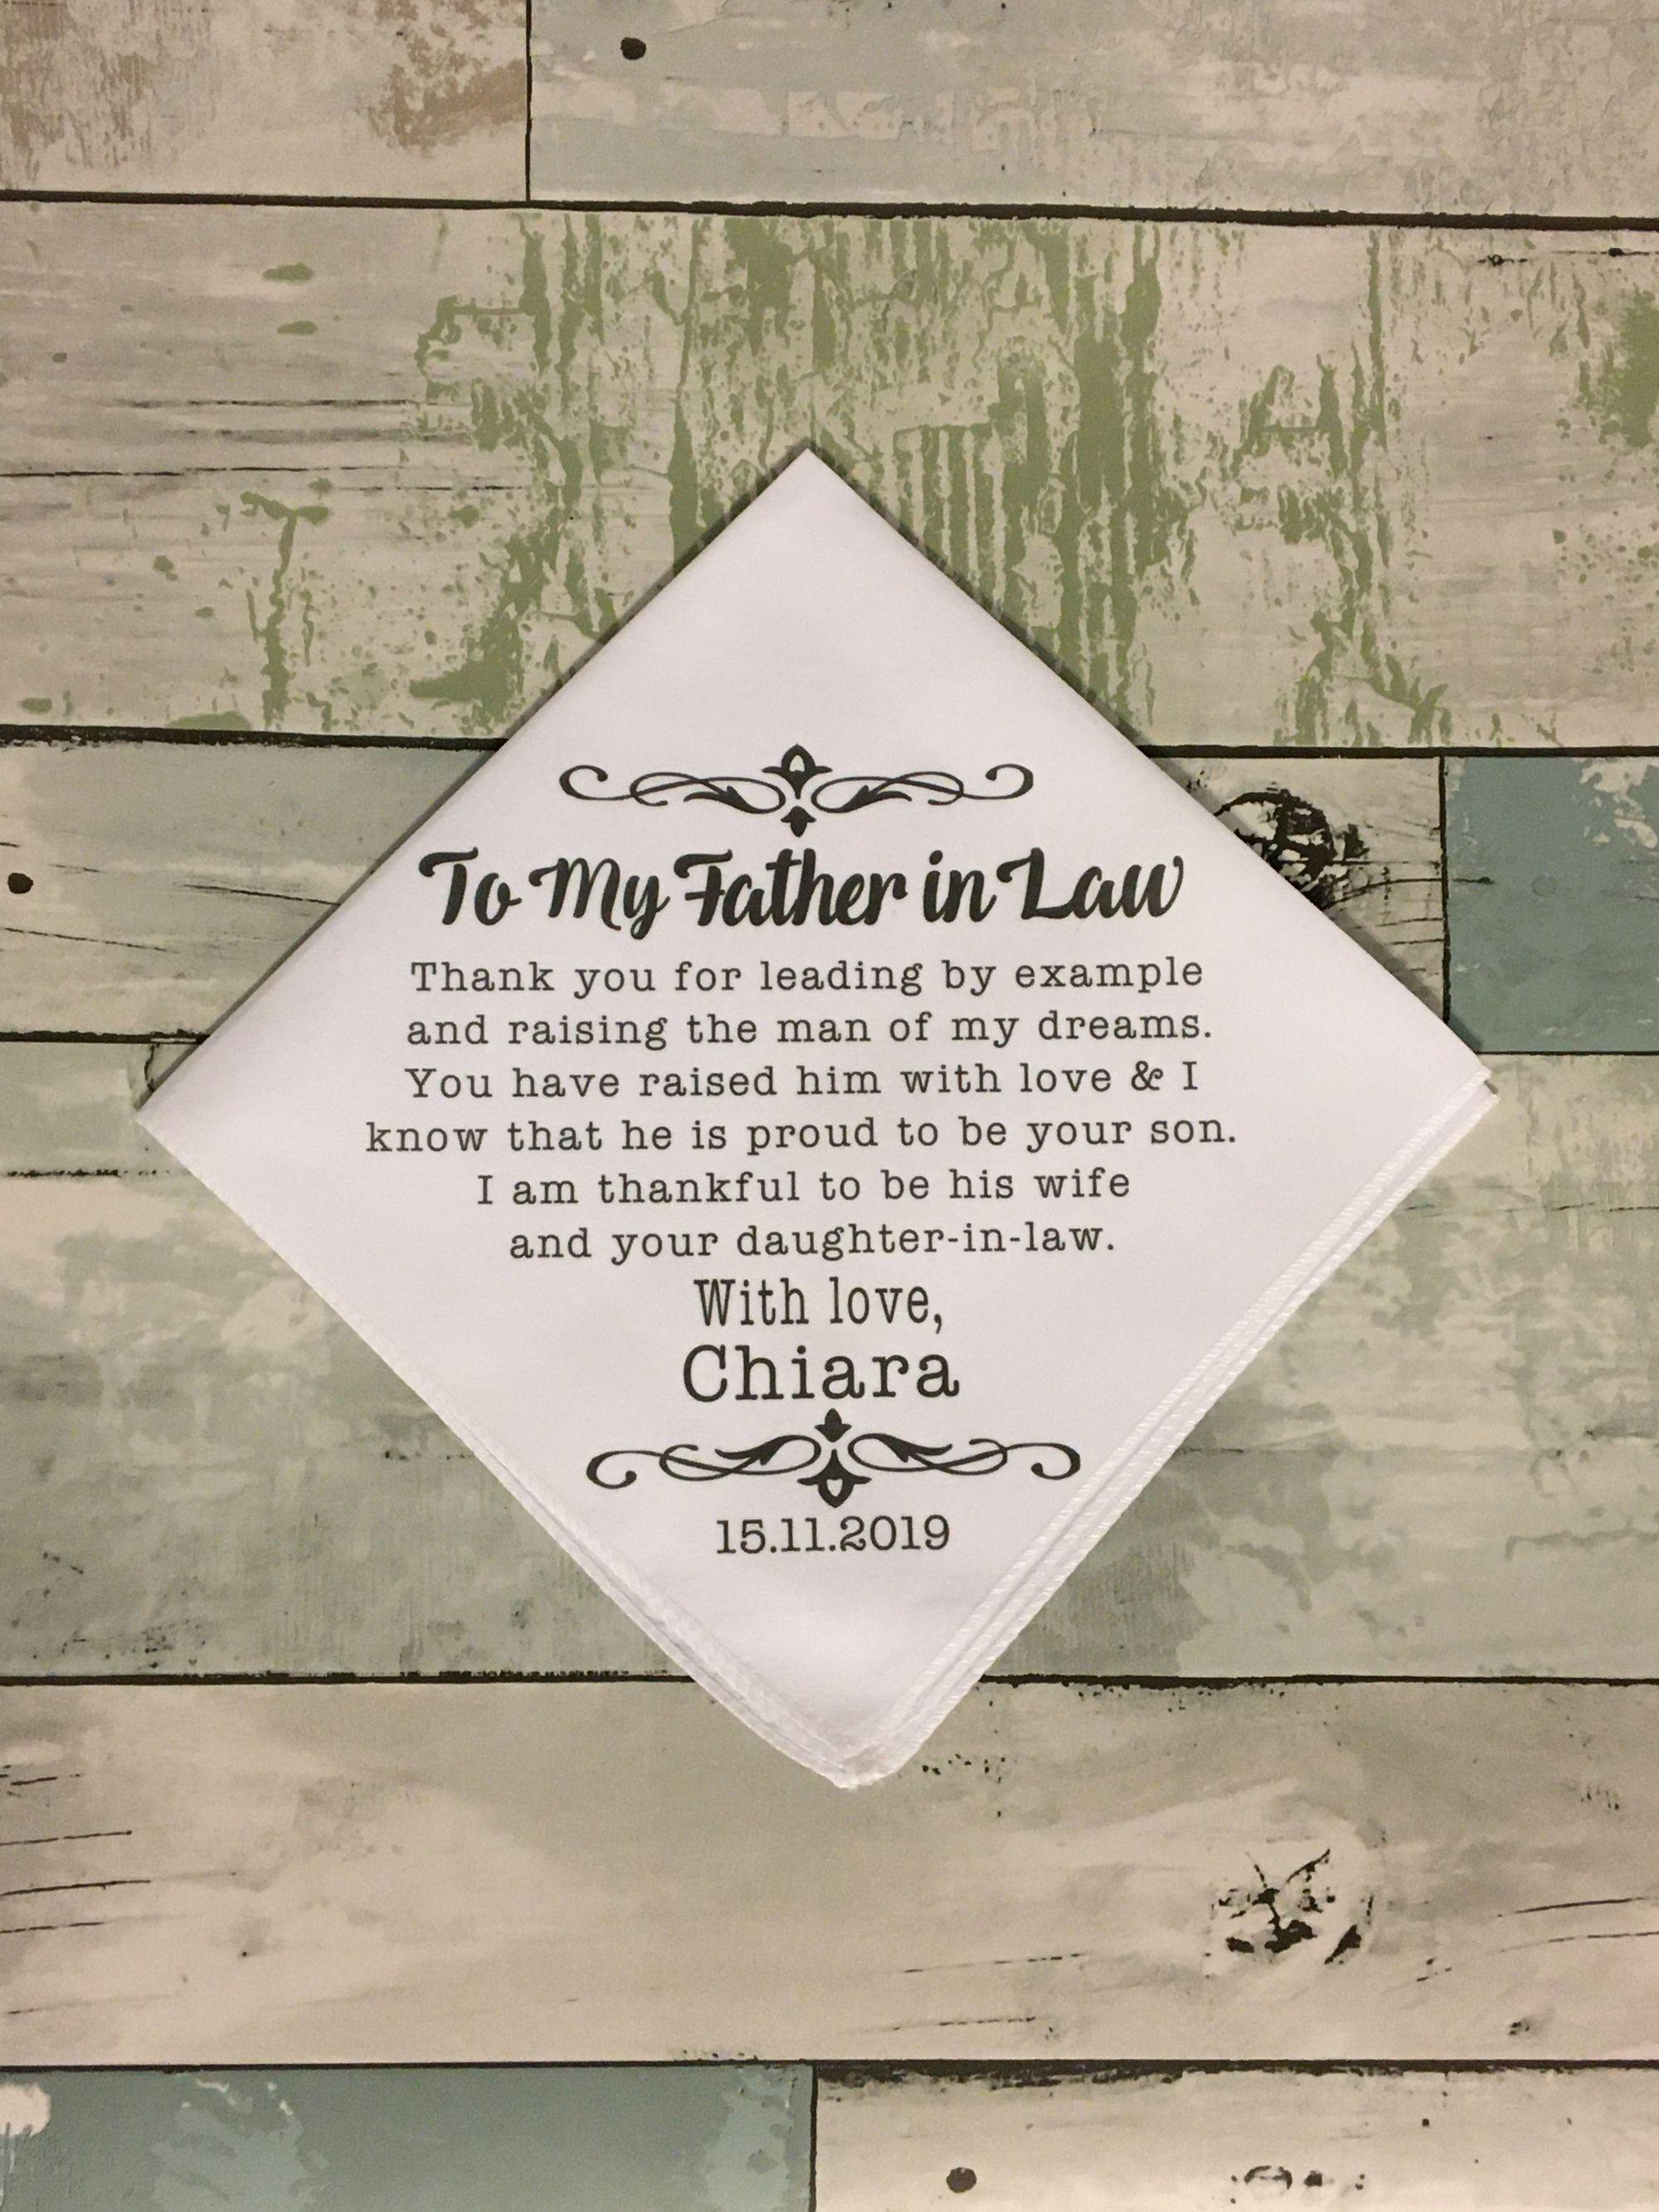 Father In Law Wedding Present Father Of The Groom Gift Customized Wedding Day Handkerchief Gift From Bride To Father In Law Wedding Gift In 2020 Father In Law Gifts Wedding Gifts For Groom Wedding Day